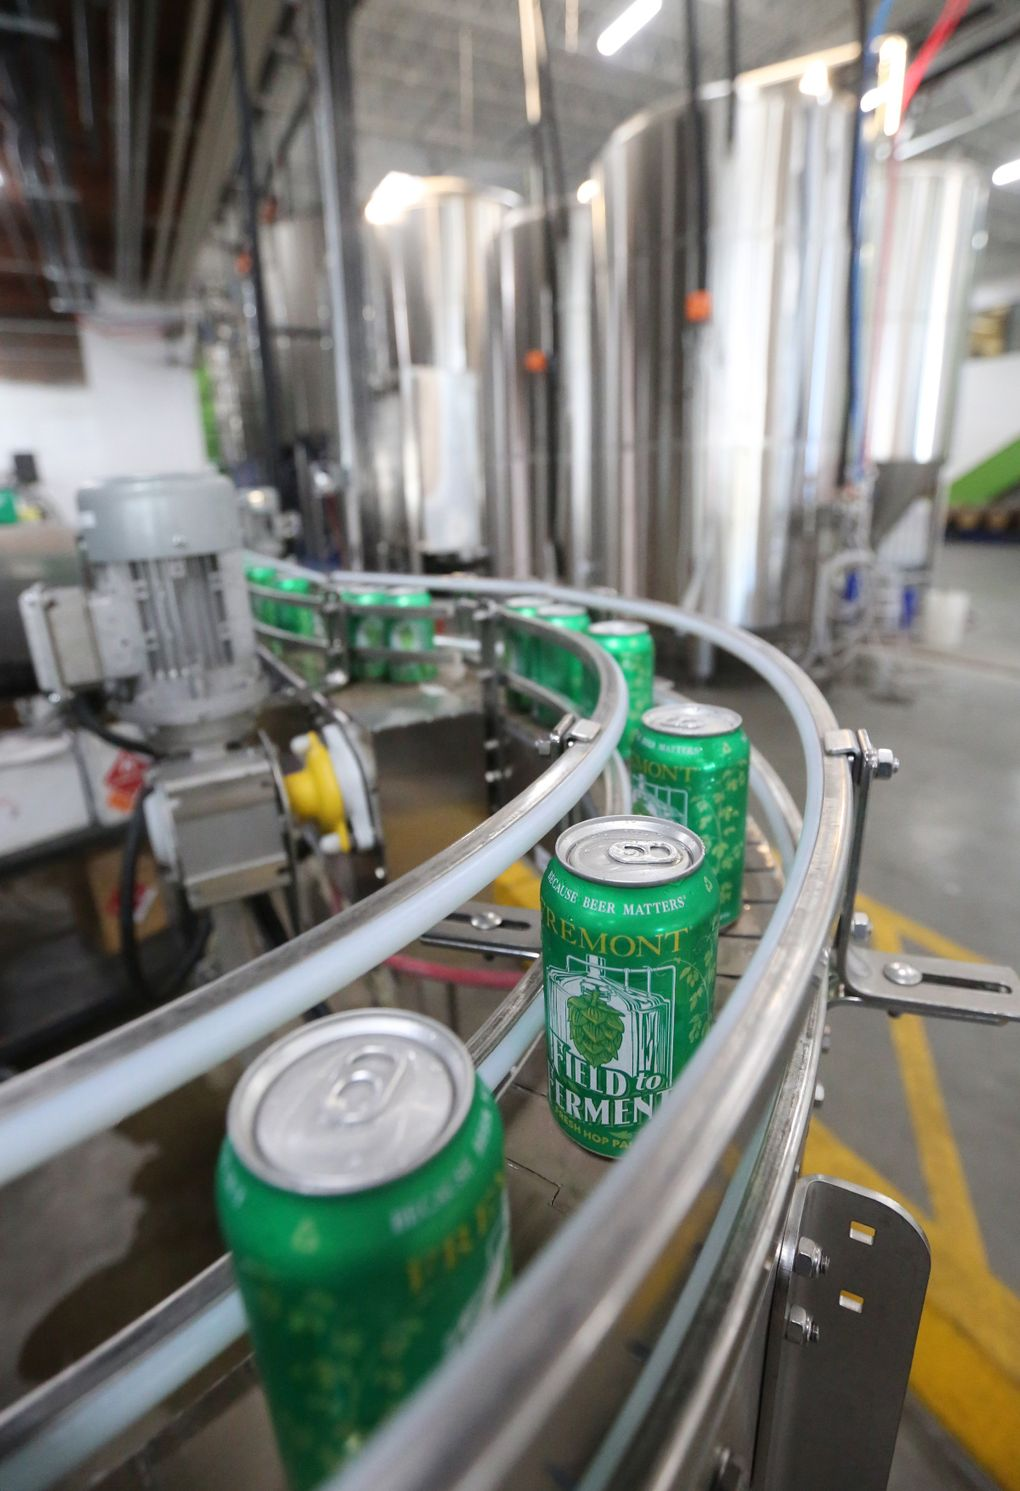 """At Fremont Brewing's facility in Ballard, cans of fresh-hop """"Field to Ferment"""" pale ale go flying by. (Greg Gilbert/The Seattle Times)"""